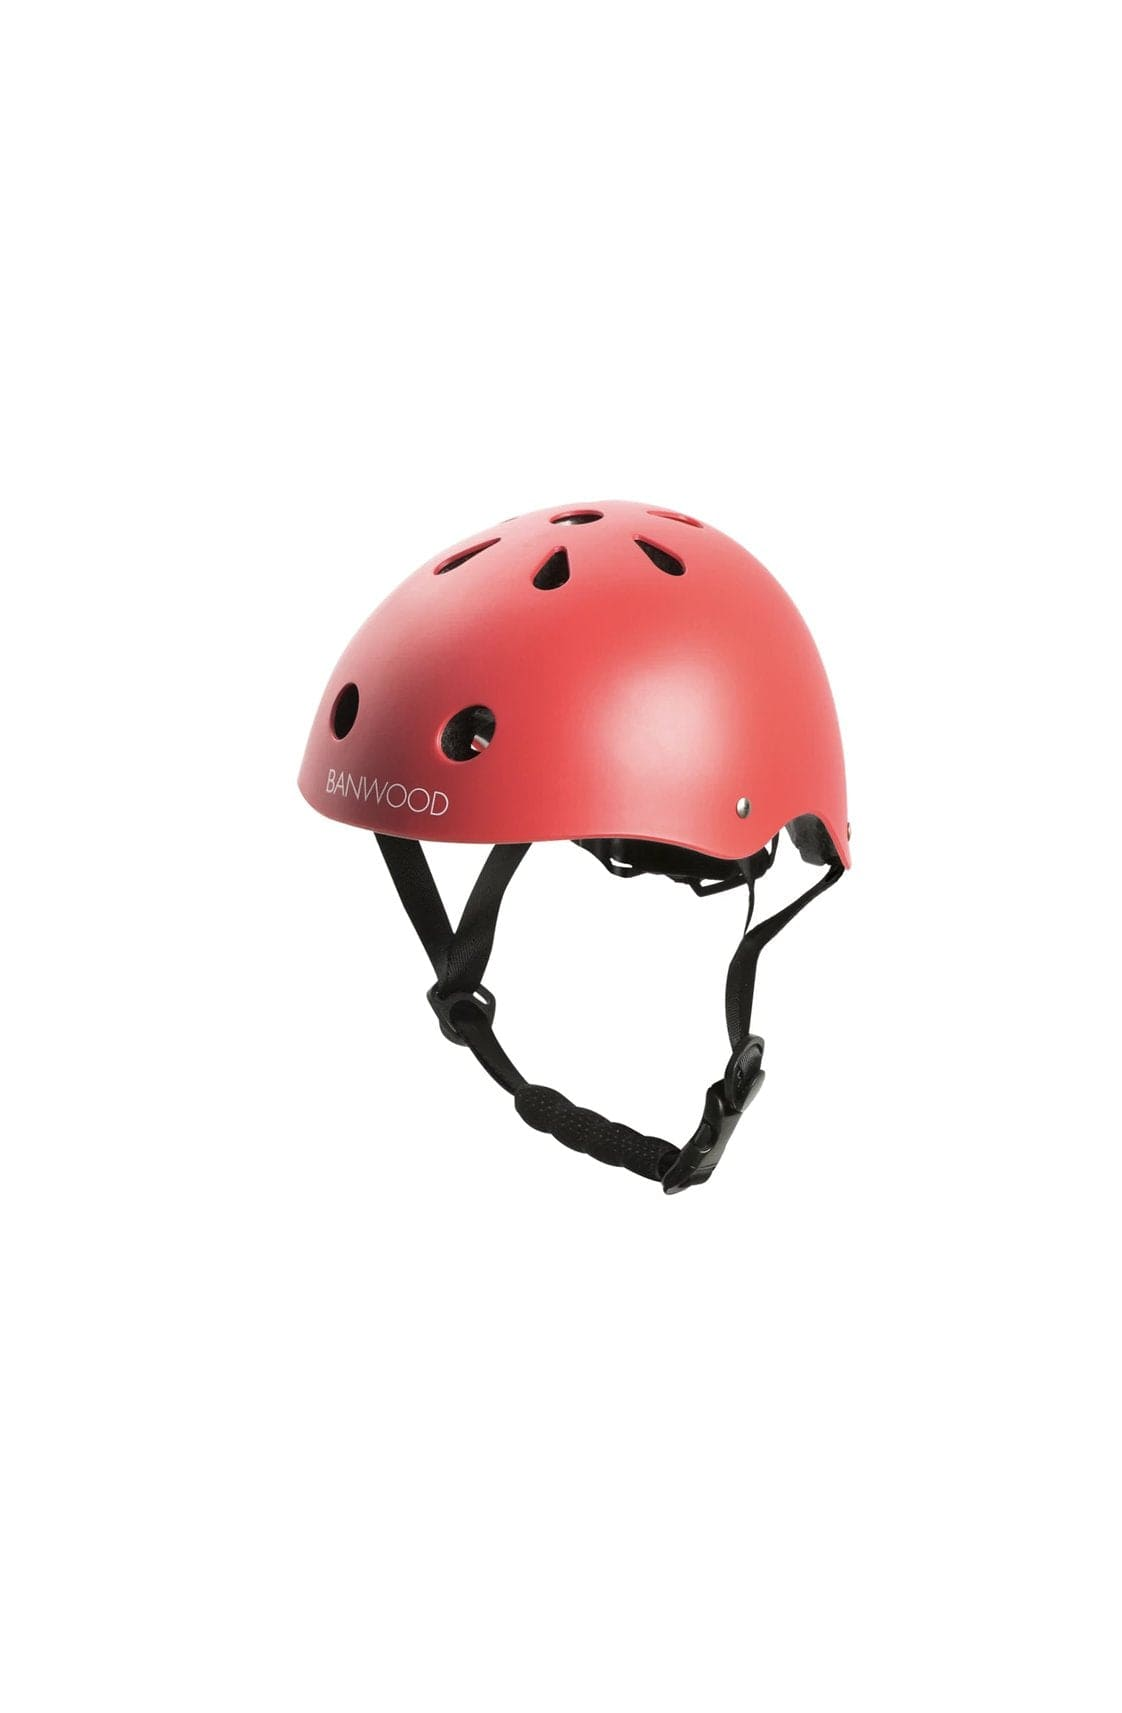 BANWOOD CLASSIC HELMET MATTE RED - Hello Little Birdie